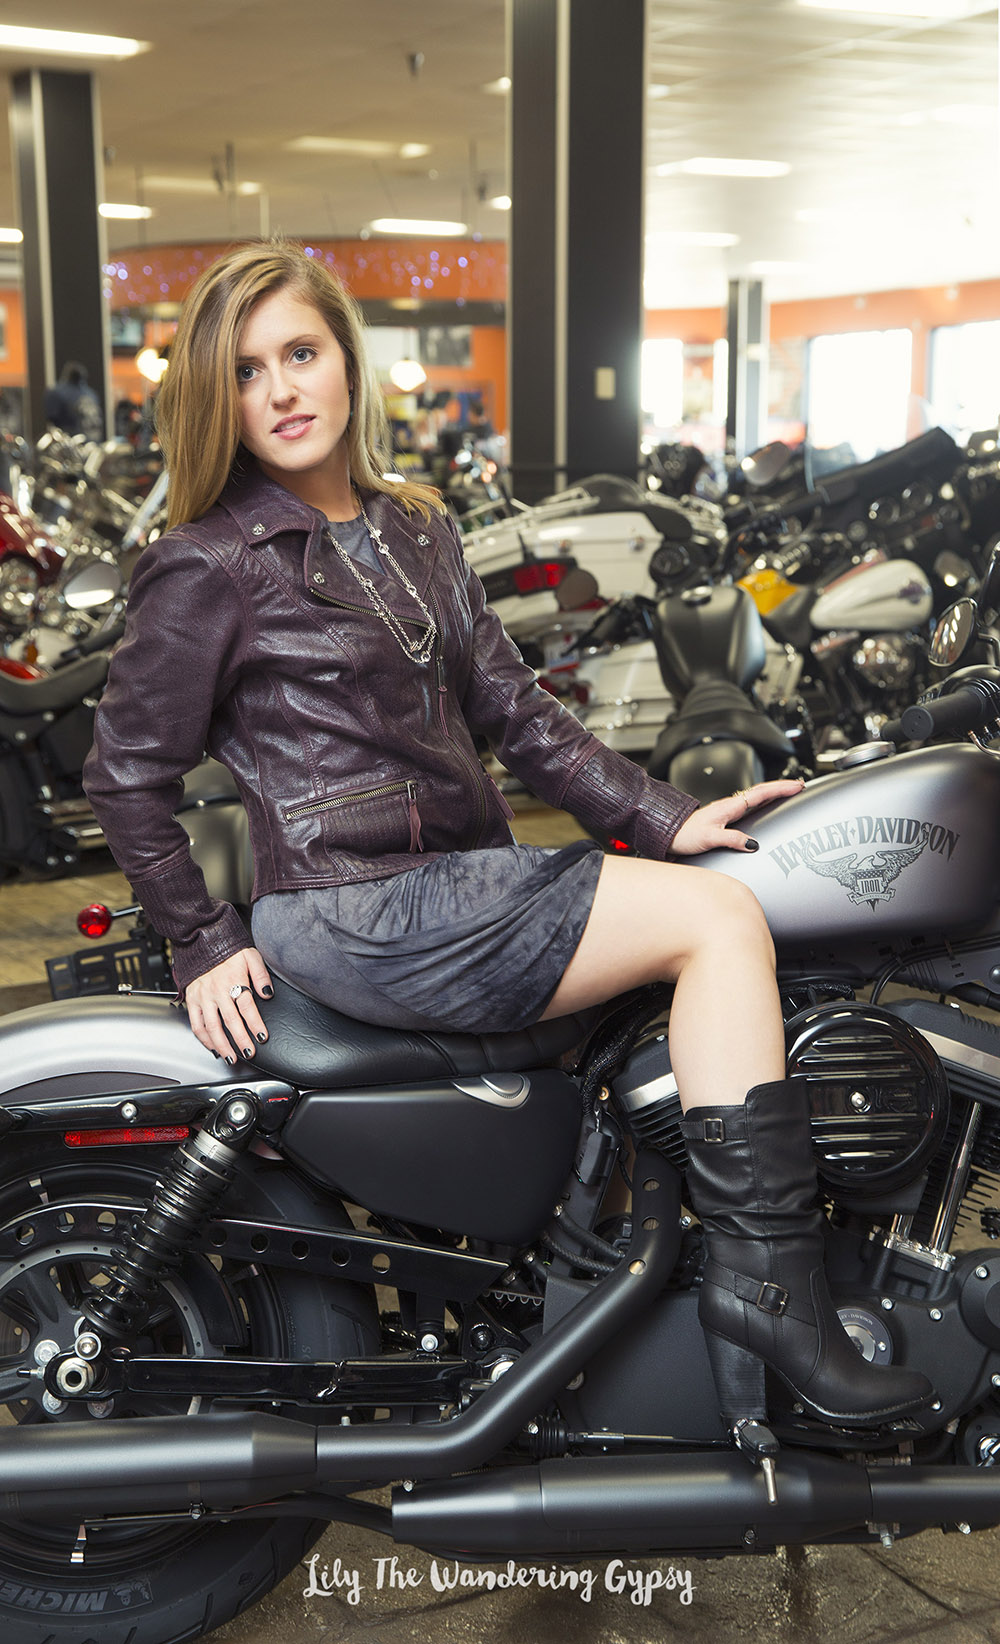 Lily The Wandering Gypsy + Harley-Davidson